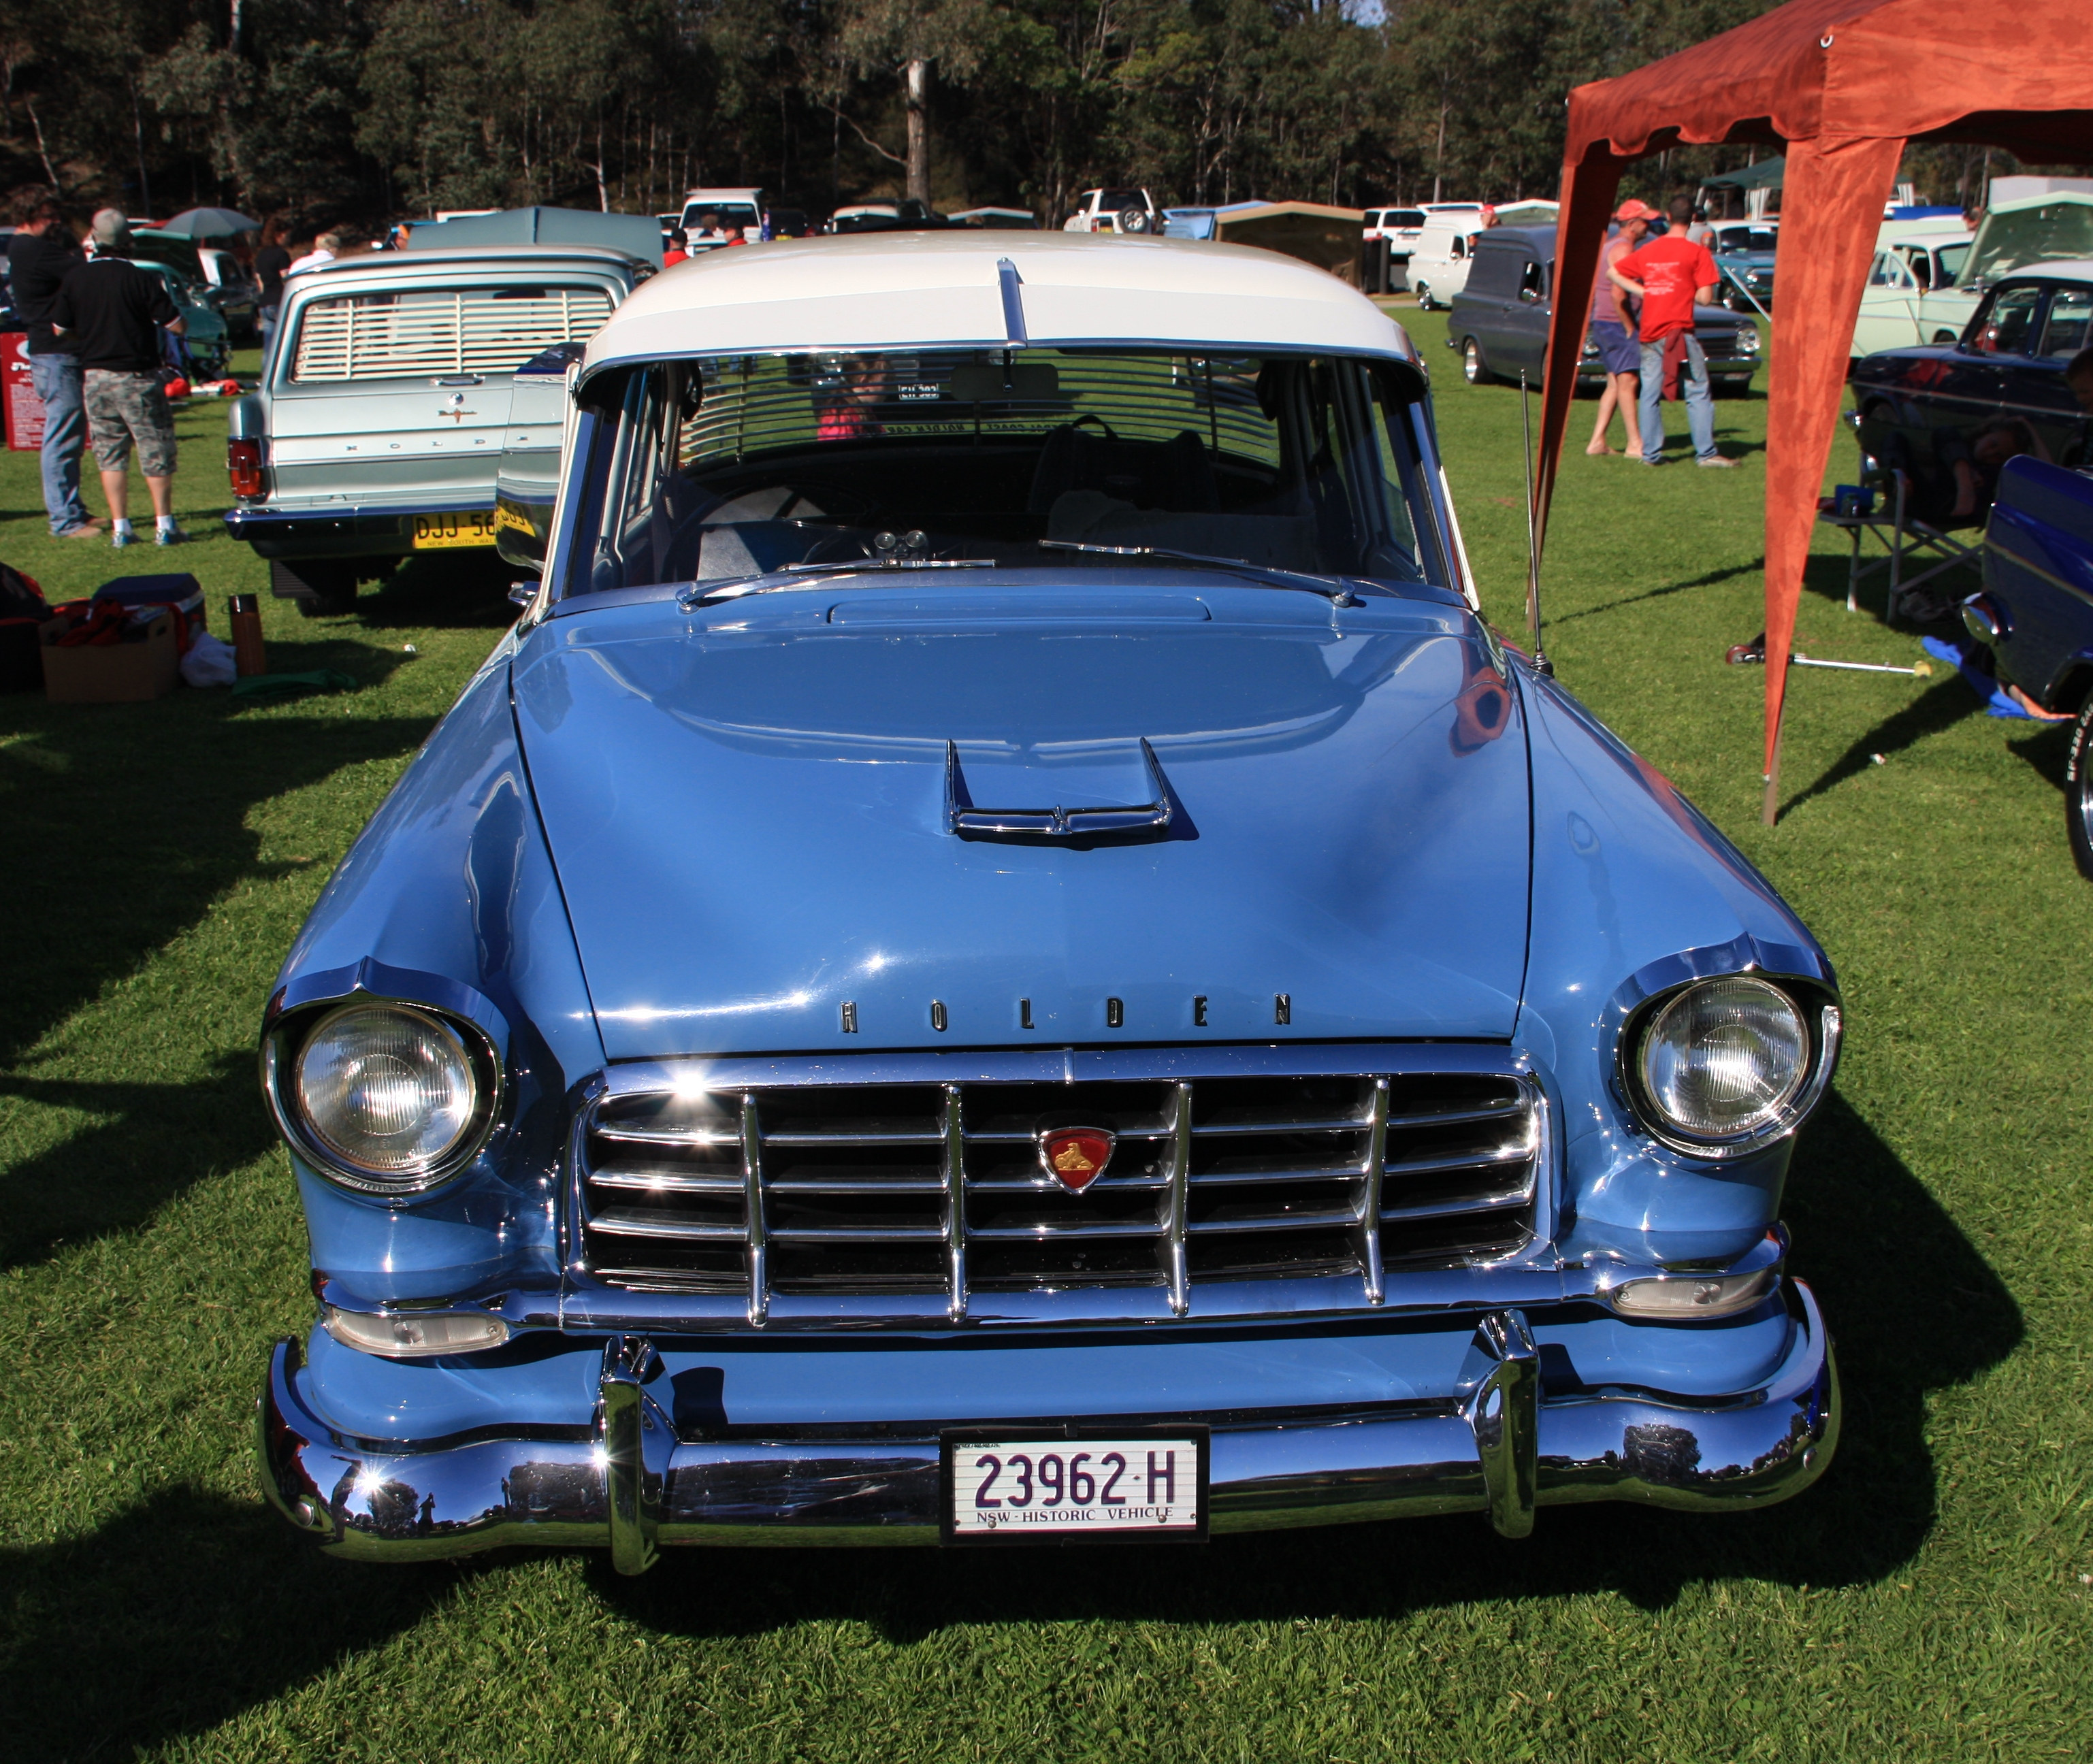 File:Old holden historical vehicle.JPG - Wikimedia Commons